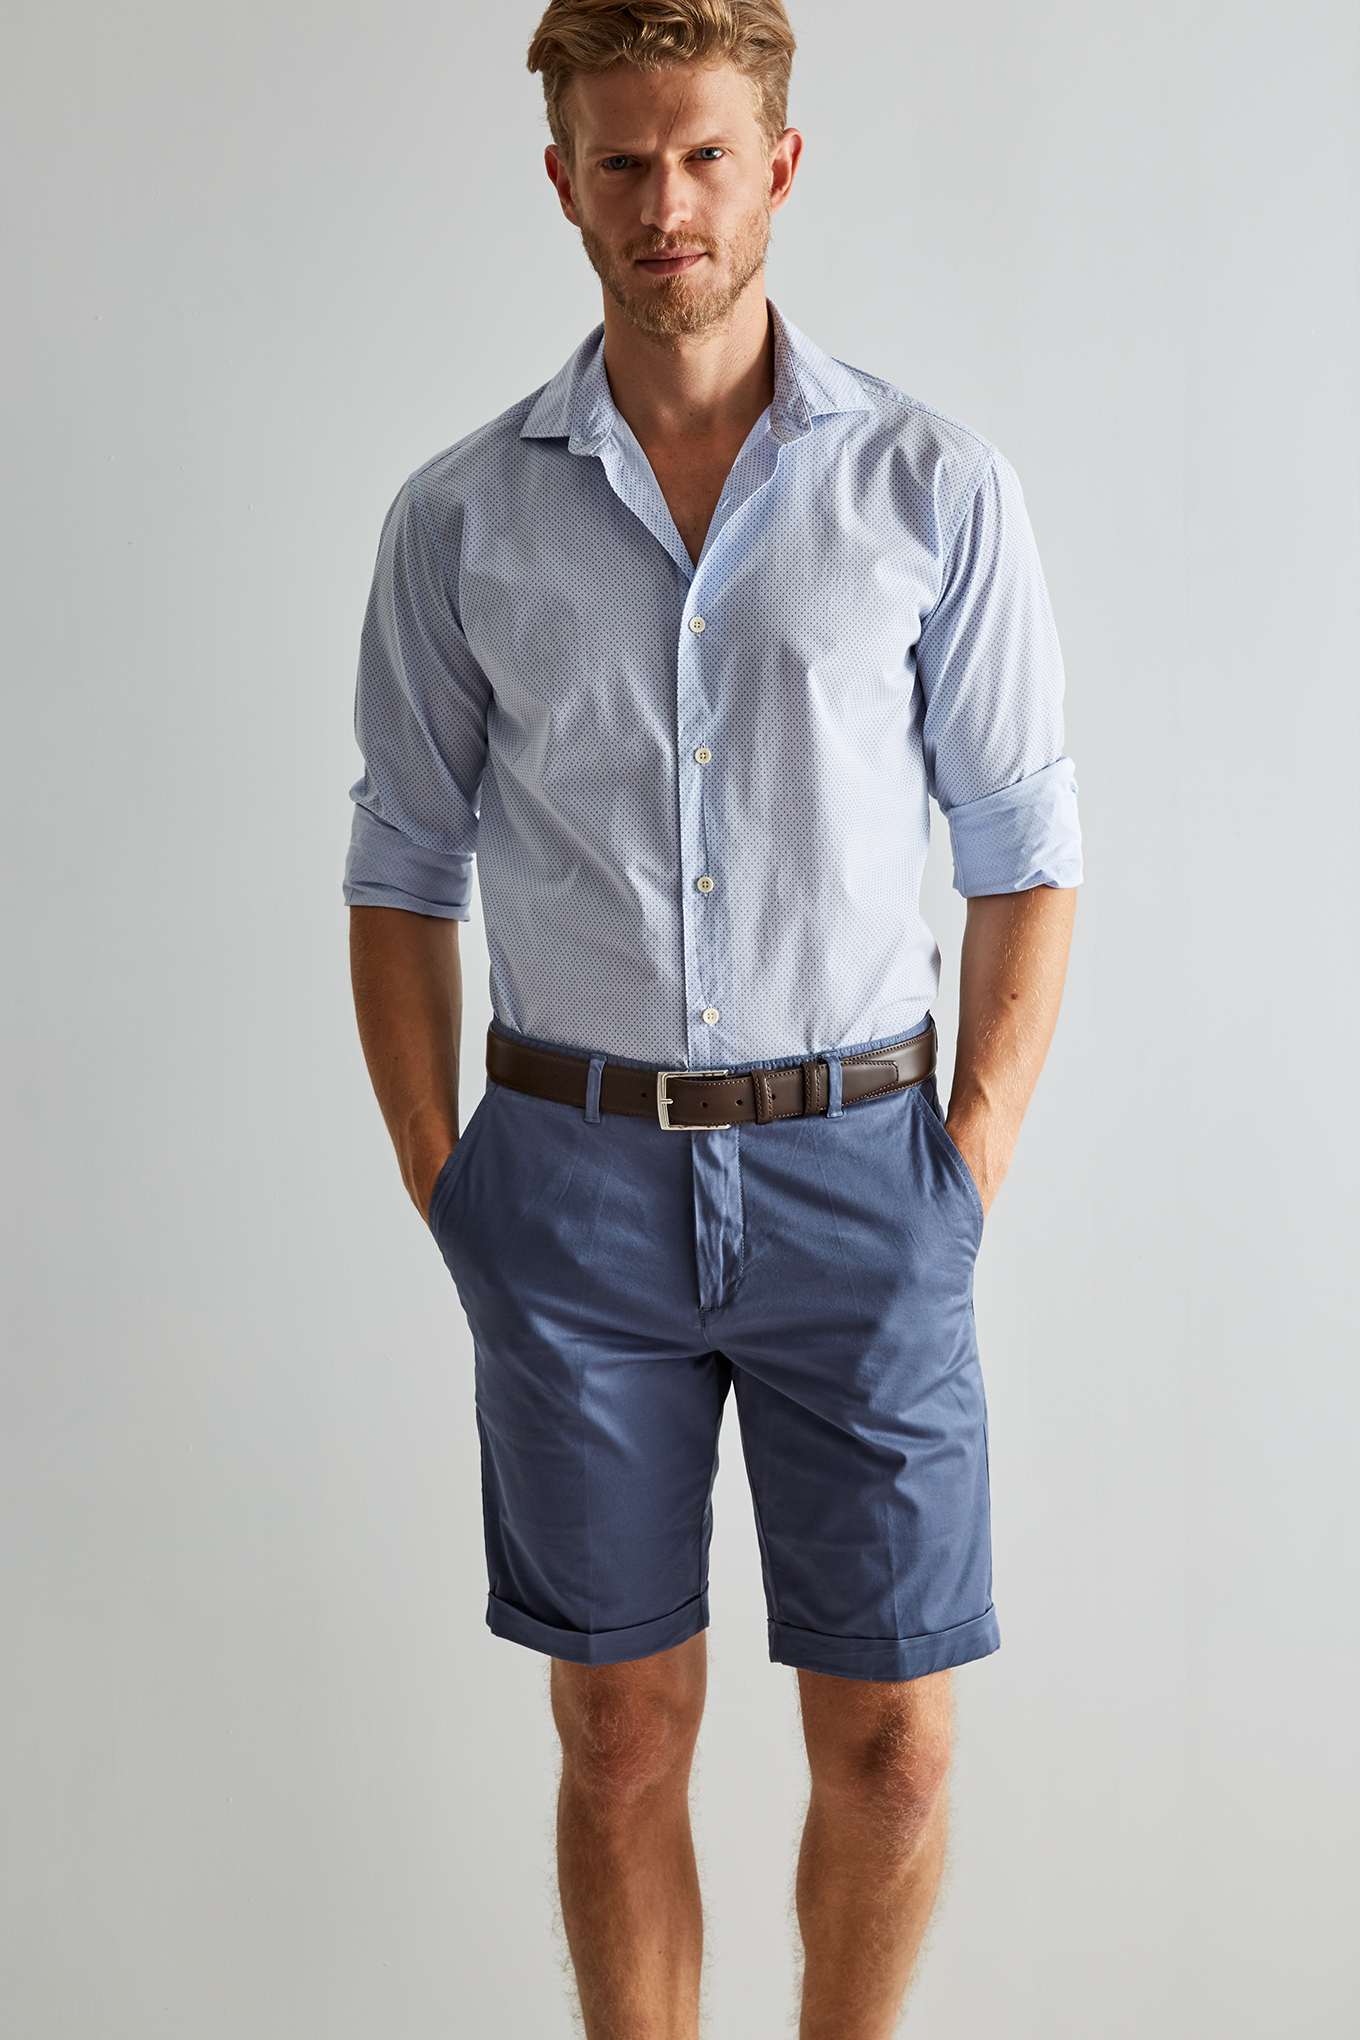 Bermuda Blue Casual Man